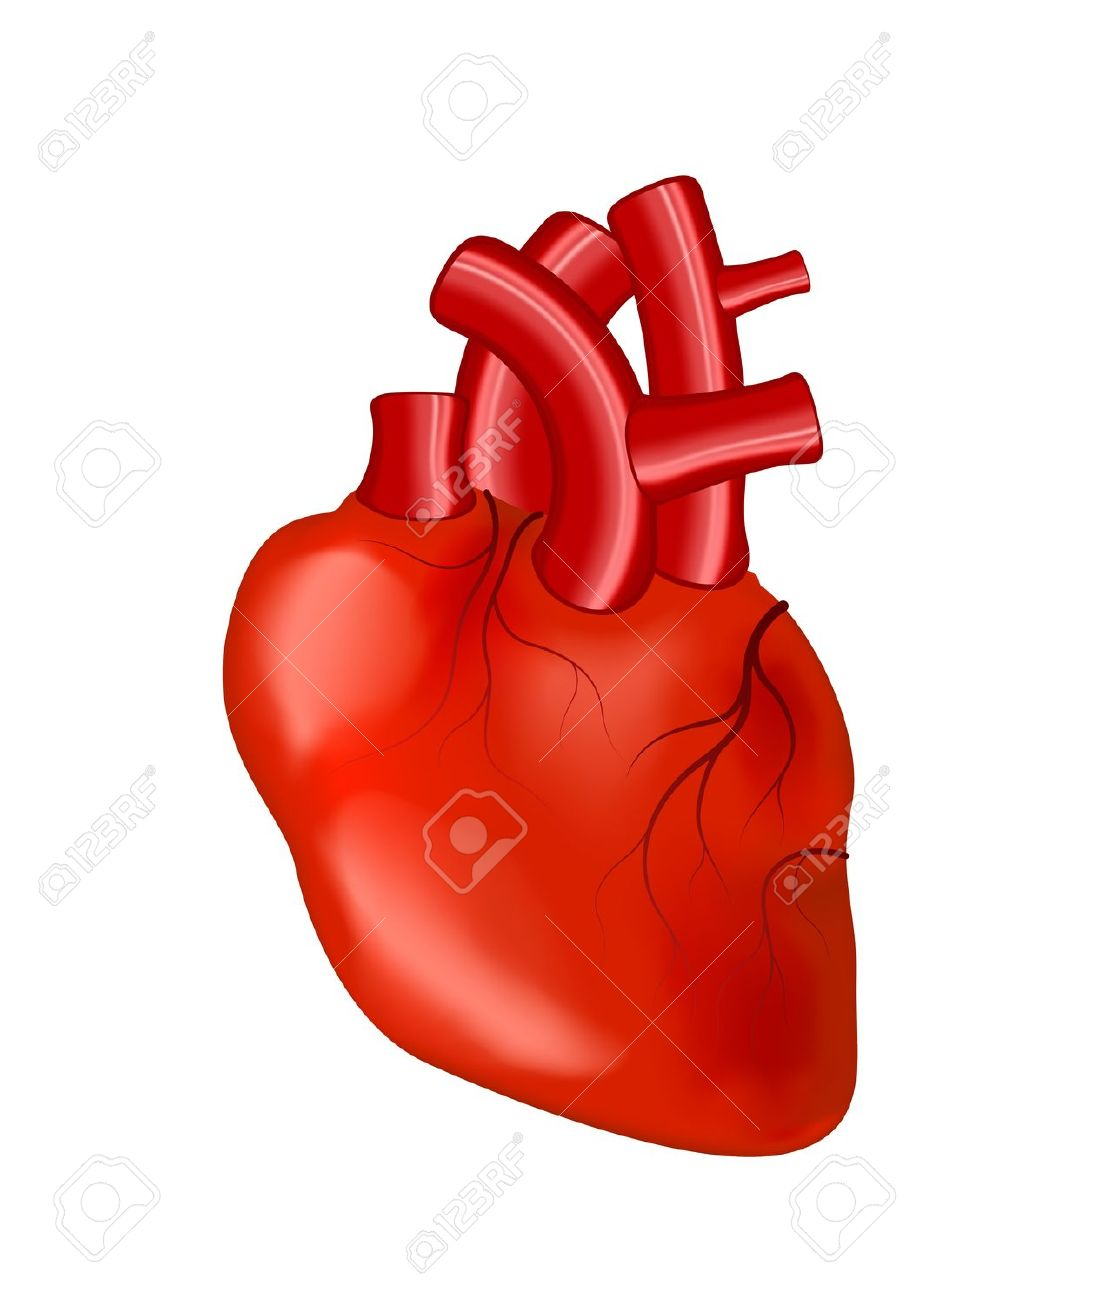 1093x1300 Human Heart Images With Parts Clipart Real Human Heart Clipart